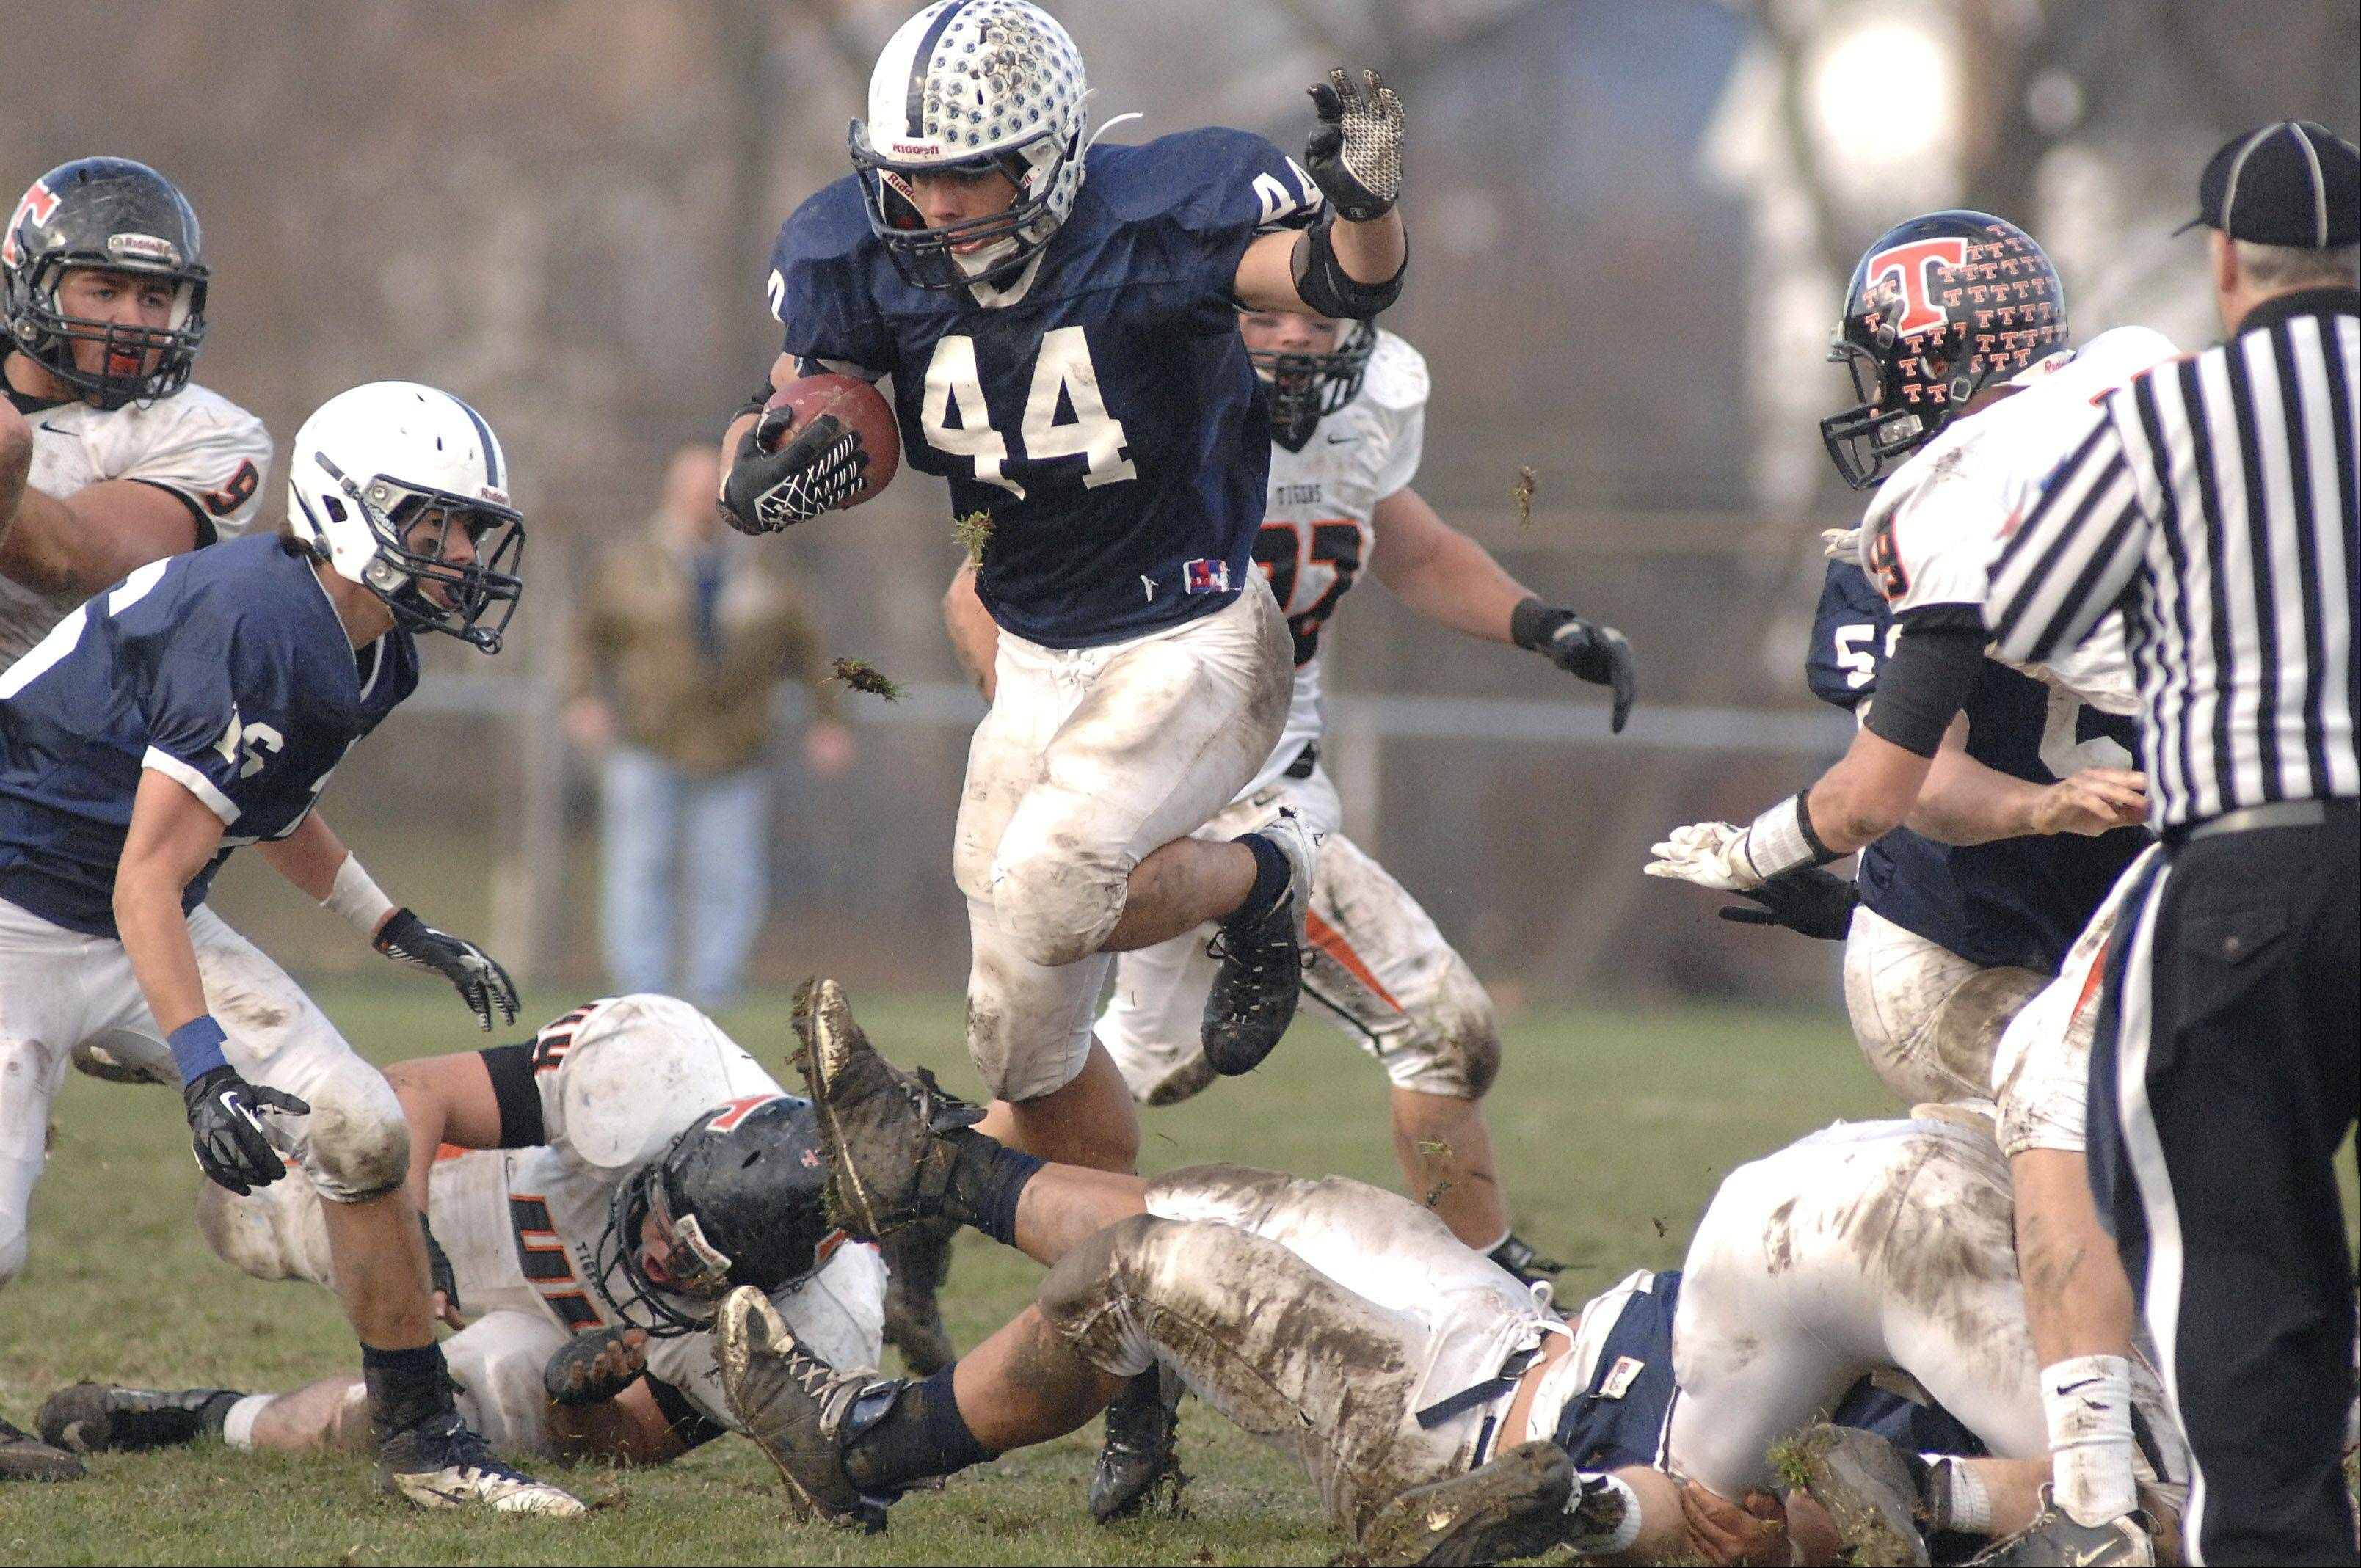 Cary-Grove's Kyle Norberg leaps over a block in the third quarter.